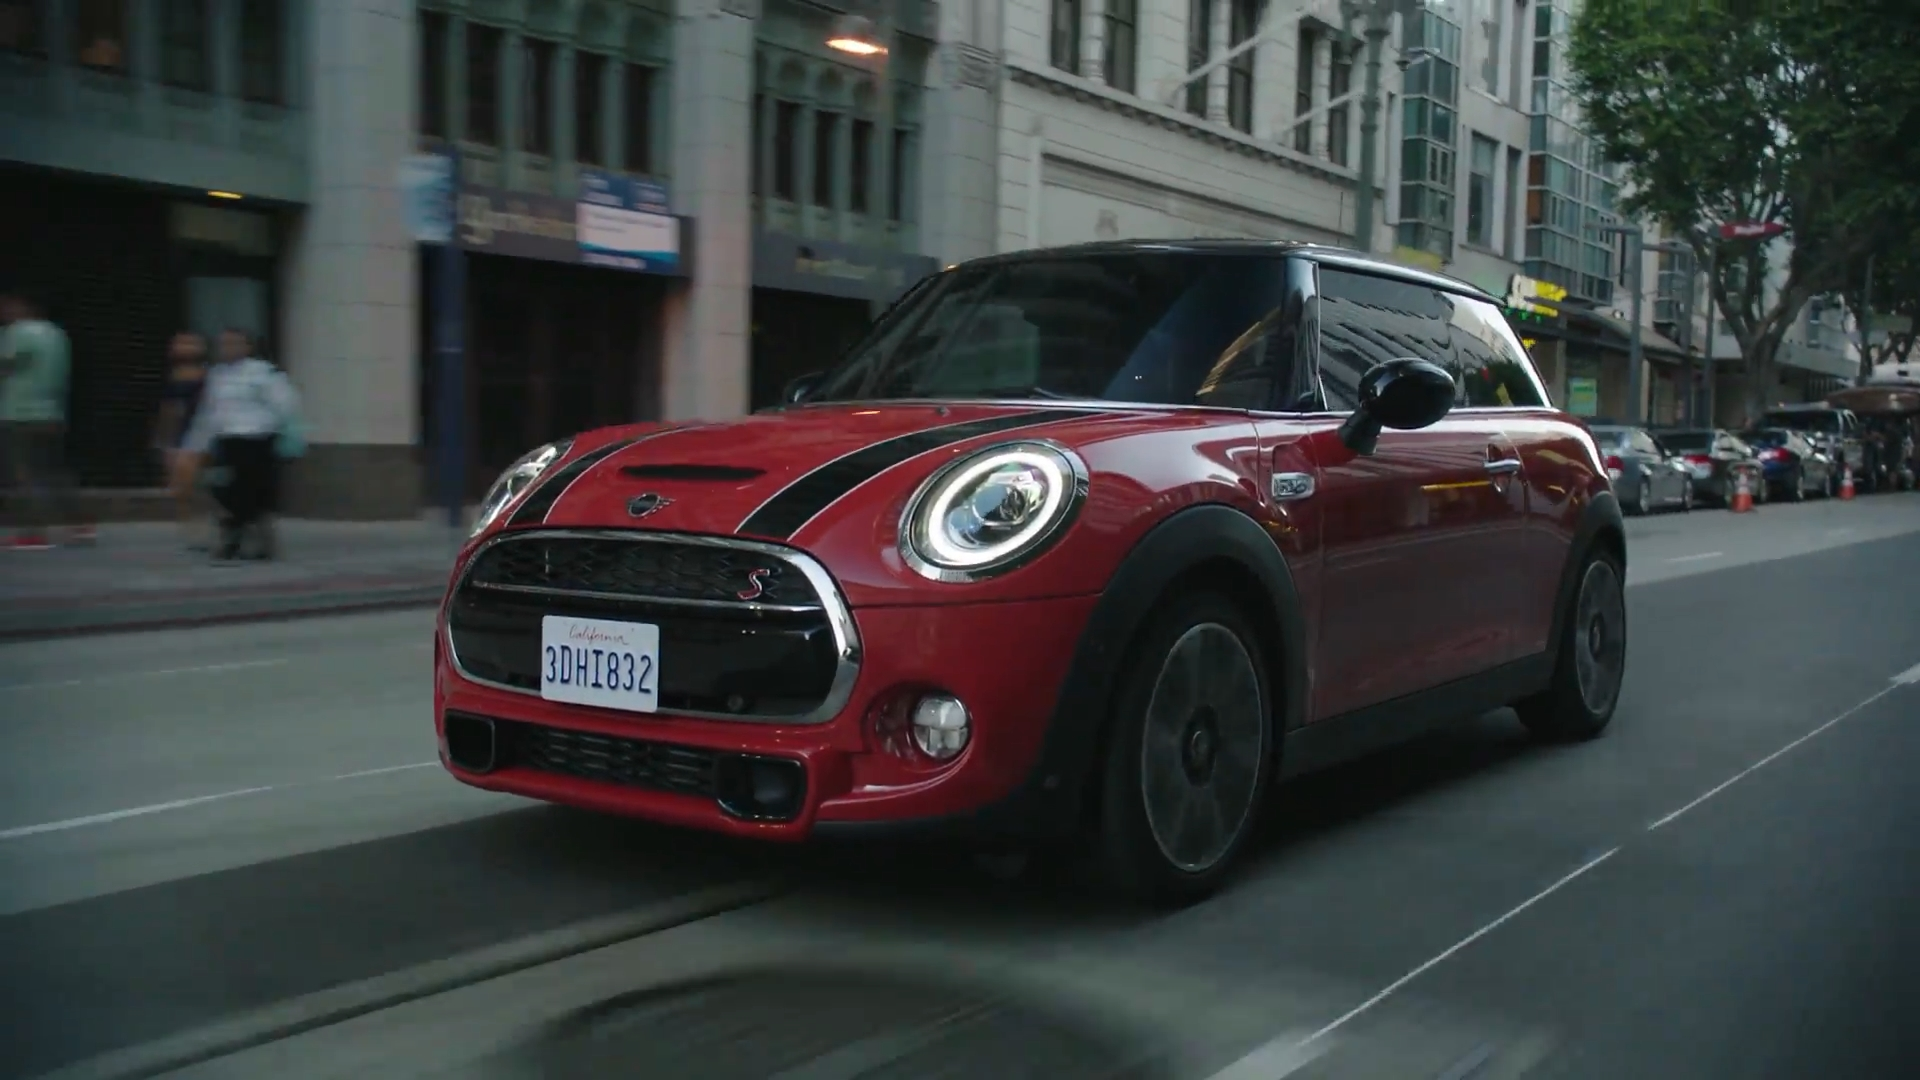 The new MINI 3 door Driving Video